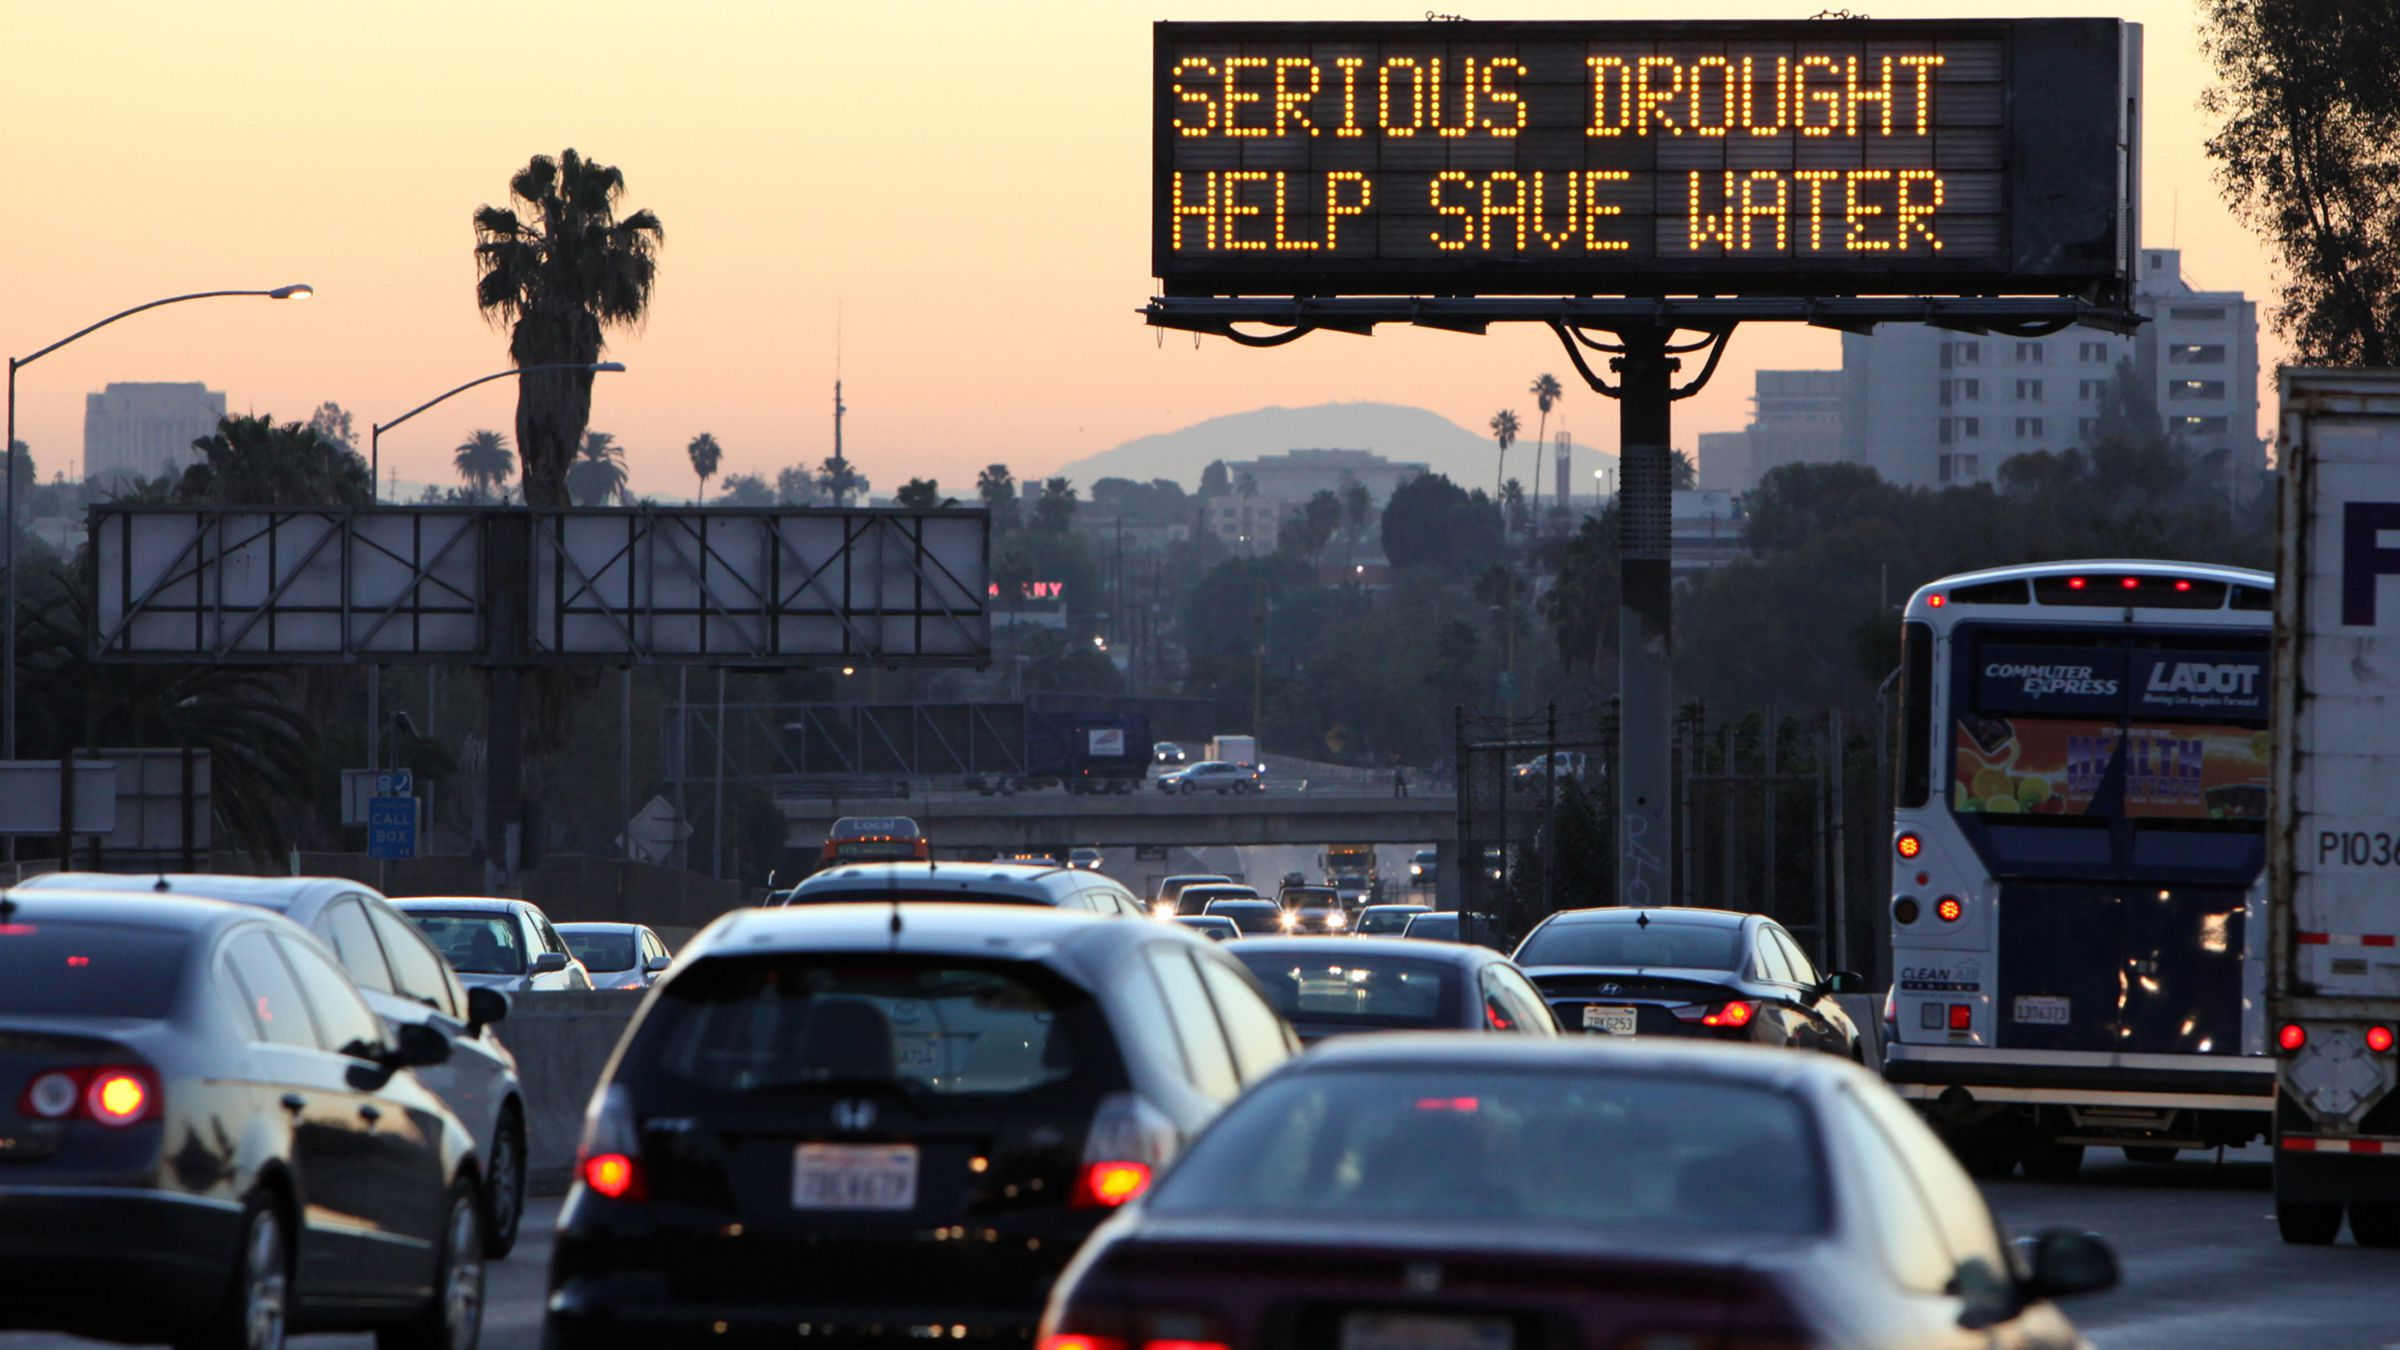 climate change colorado basin river drought In this Friday, Feb. 14, 2014, file photo, morning traffic makes it's way toward downtown Los Angeles along the Hollywood Freeway past an electronic sign warning of severe drought. Los Angeles has concluded another rain season with little to show for it. The National Weather Service says just 6.08 inches of rain was recorded downtown between July 1, 2013, and June 30. That's less than half the normal average of 14.93 inches and enters the books as the seventh-driest rain season since record-keeping began downtown in 1877. The previous rain season was worse, just 5.85 inches. (AP Photo/Richard Voge